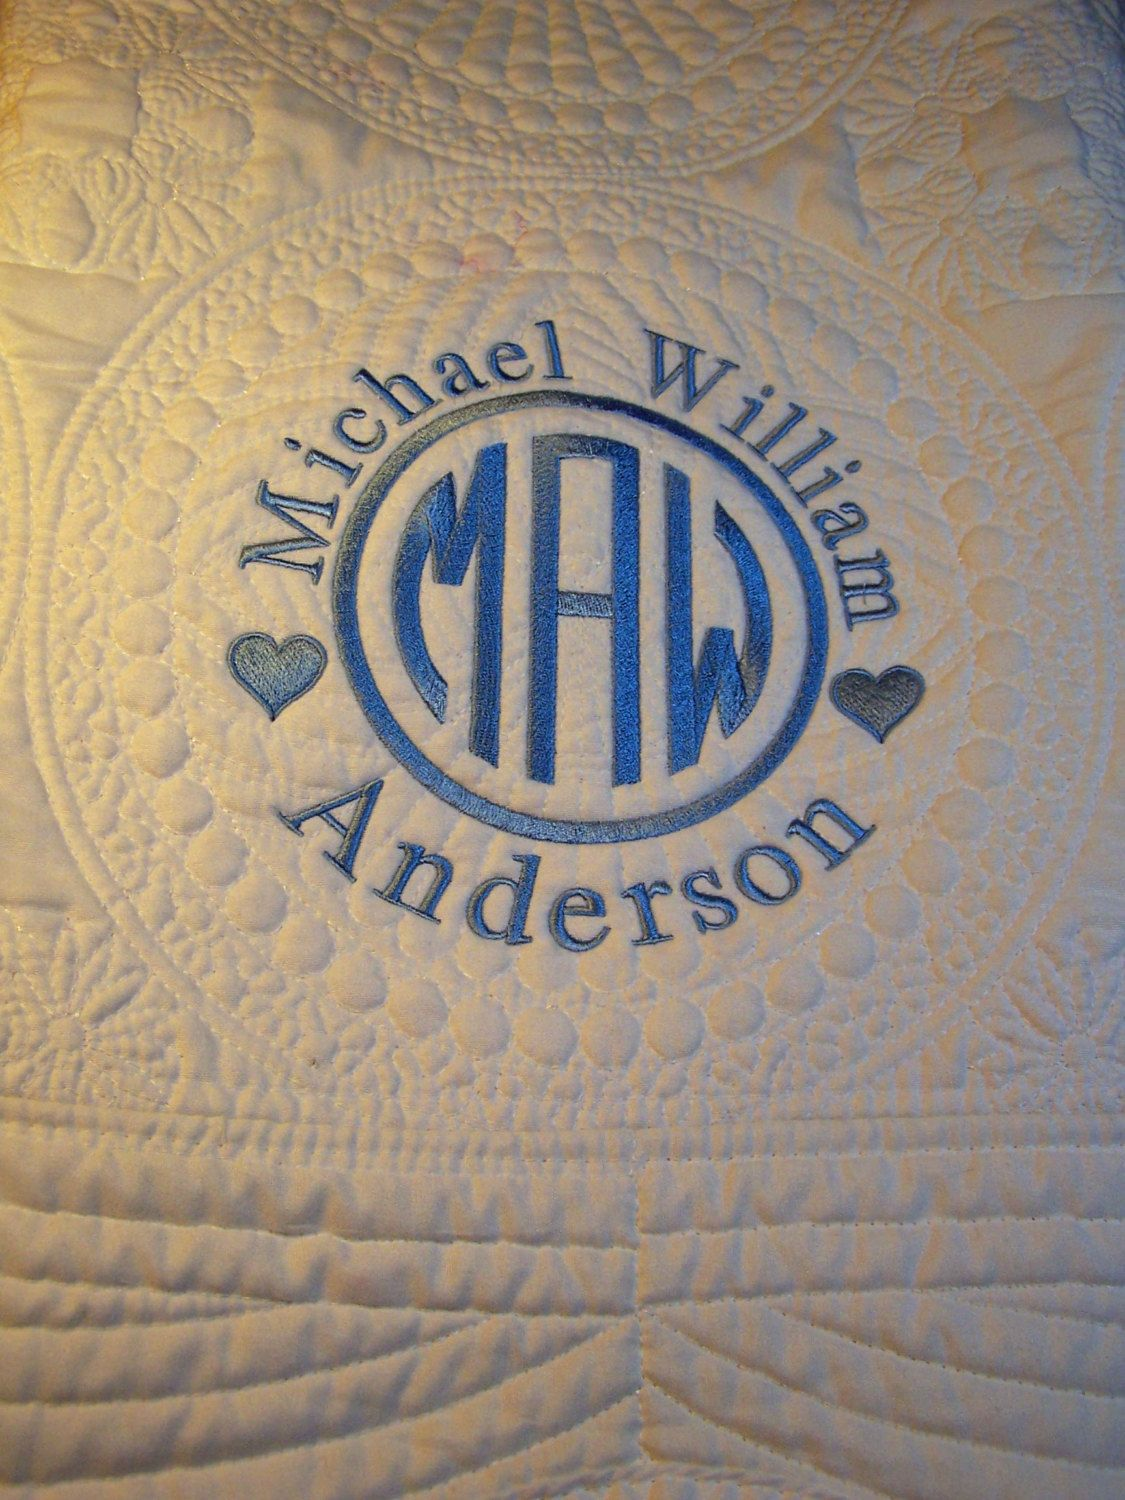 Personalized baby quilt quilt baby quilt personalized quilt personalized baby quilt quilt baby quilt personalized quilt monogrammed quilt baby blanket quilted crib blanket baby gift throws negle Image collections